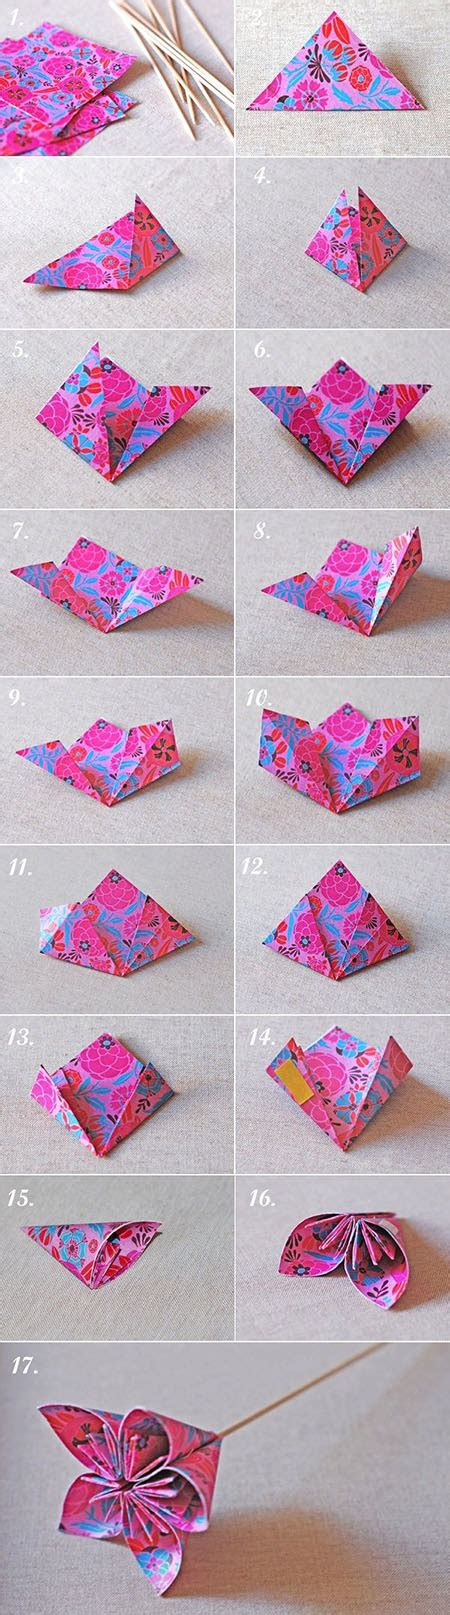 origami kusudama flowers useful tutorials